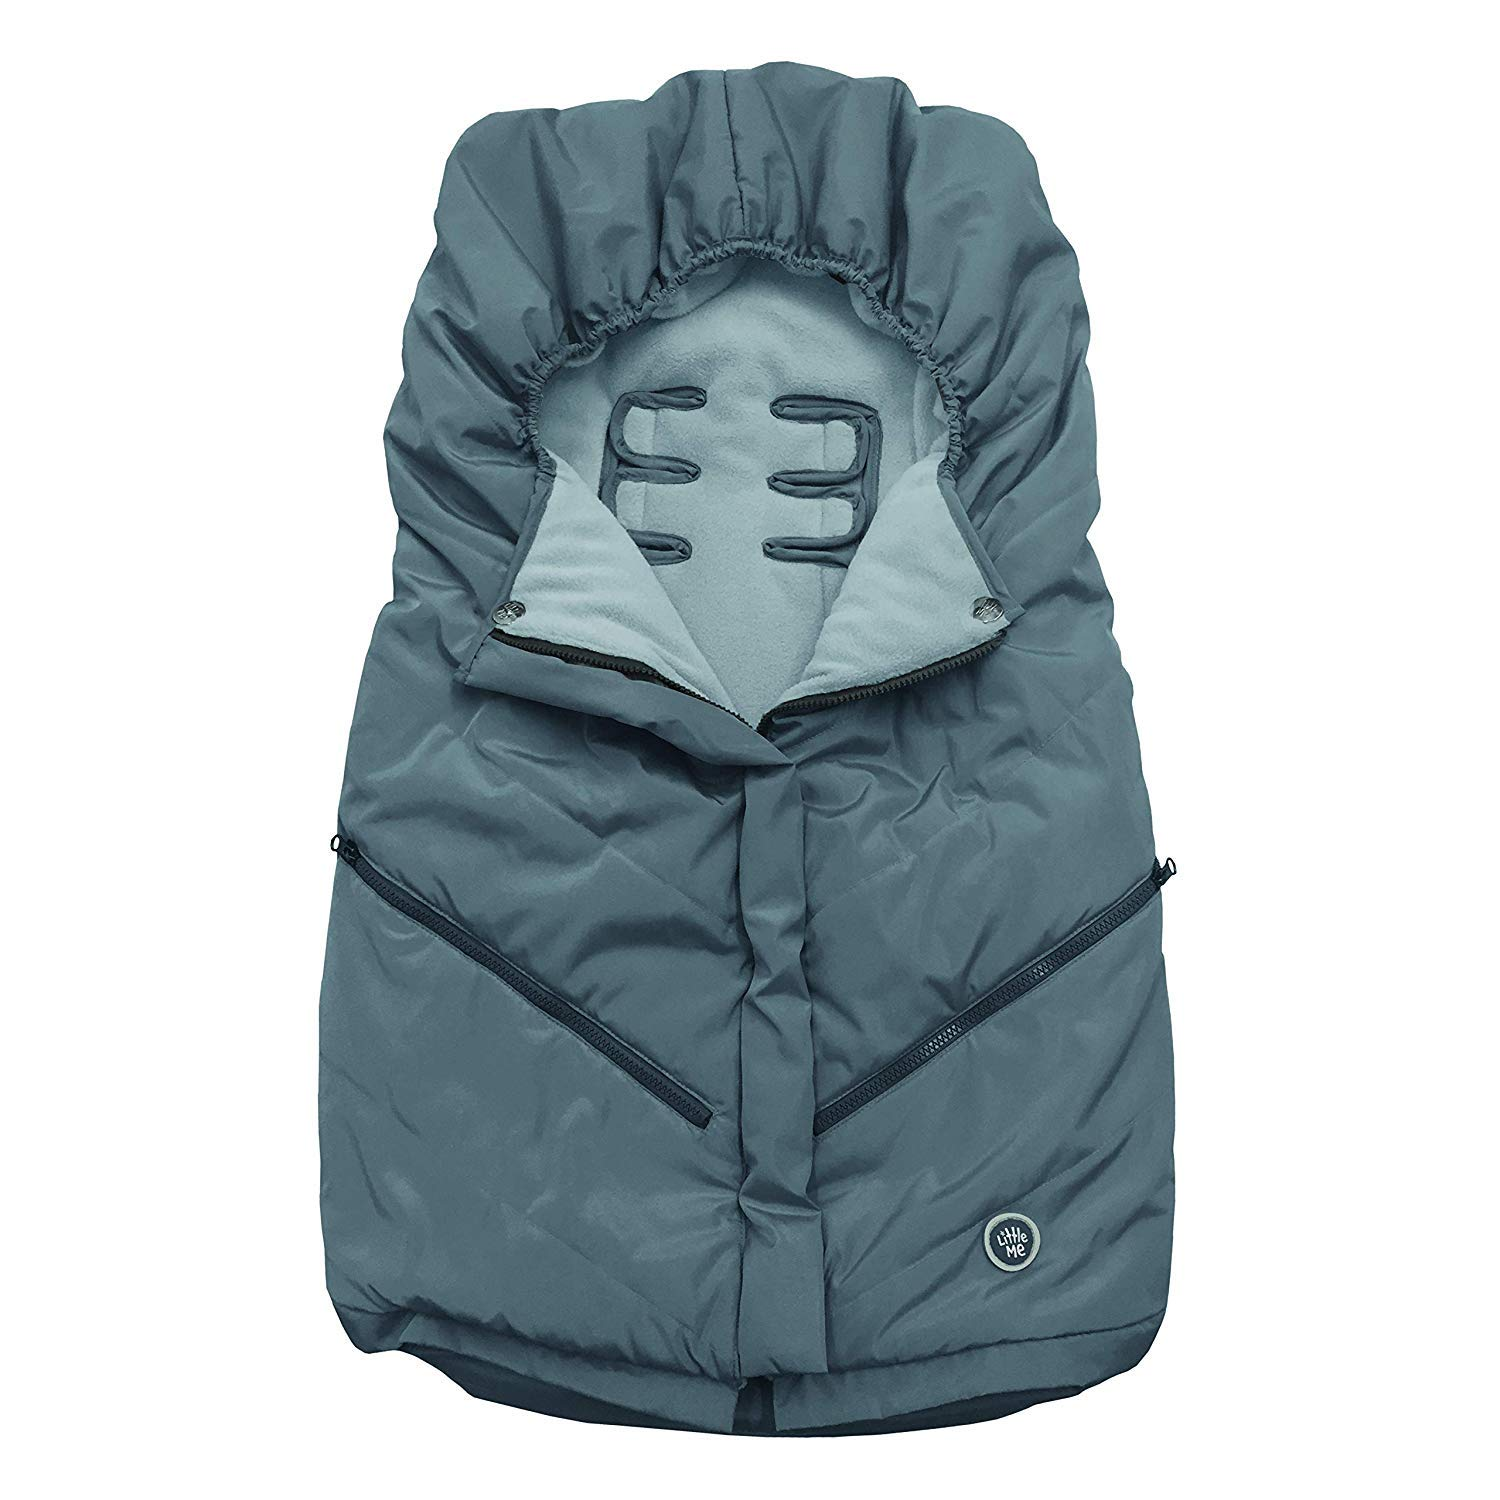 Little Me Footmuff for Strollers, Grey